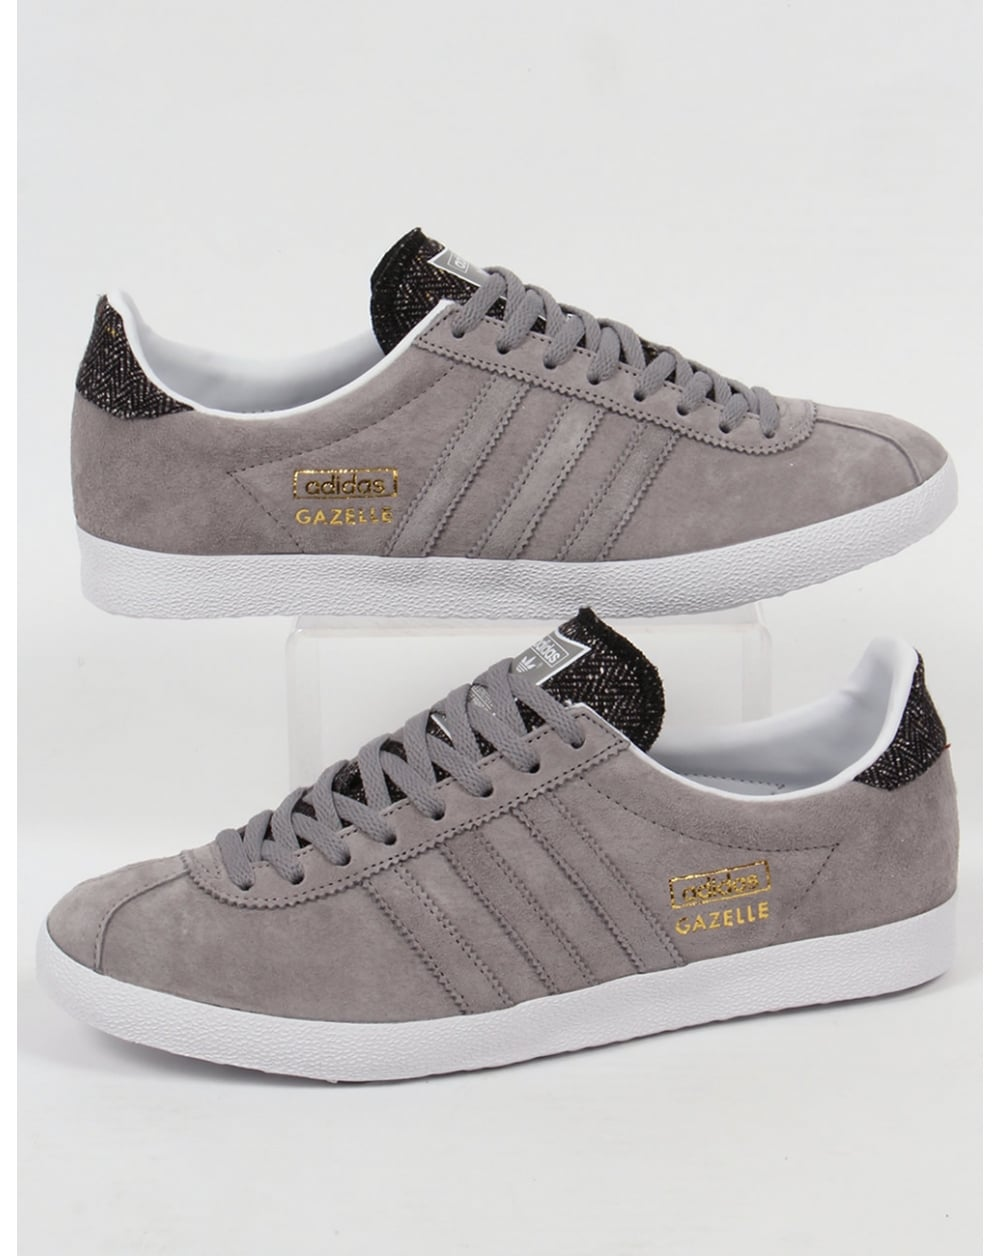 adidas originals gazelle trainers in dark grey